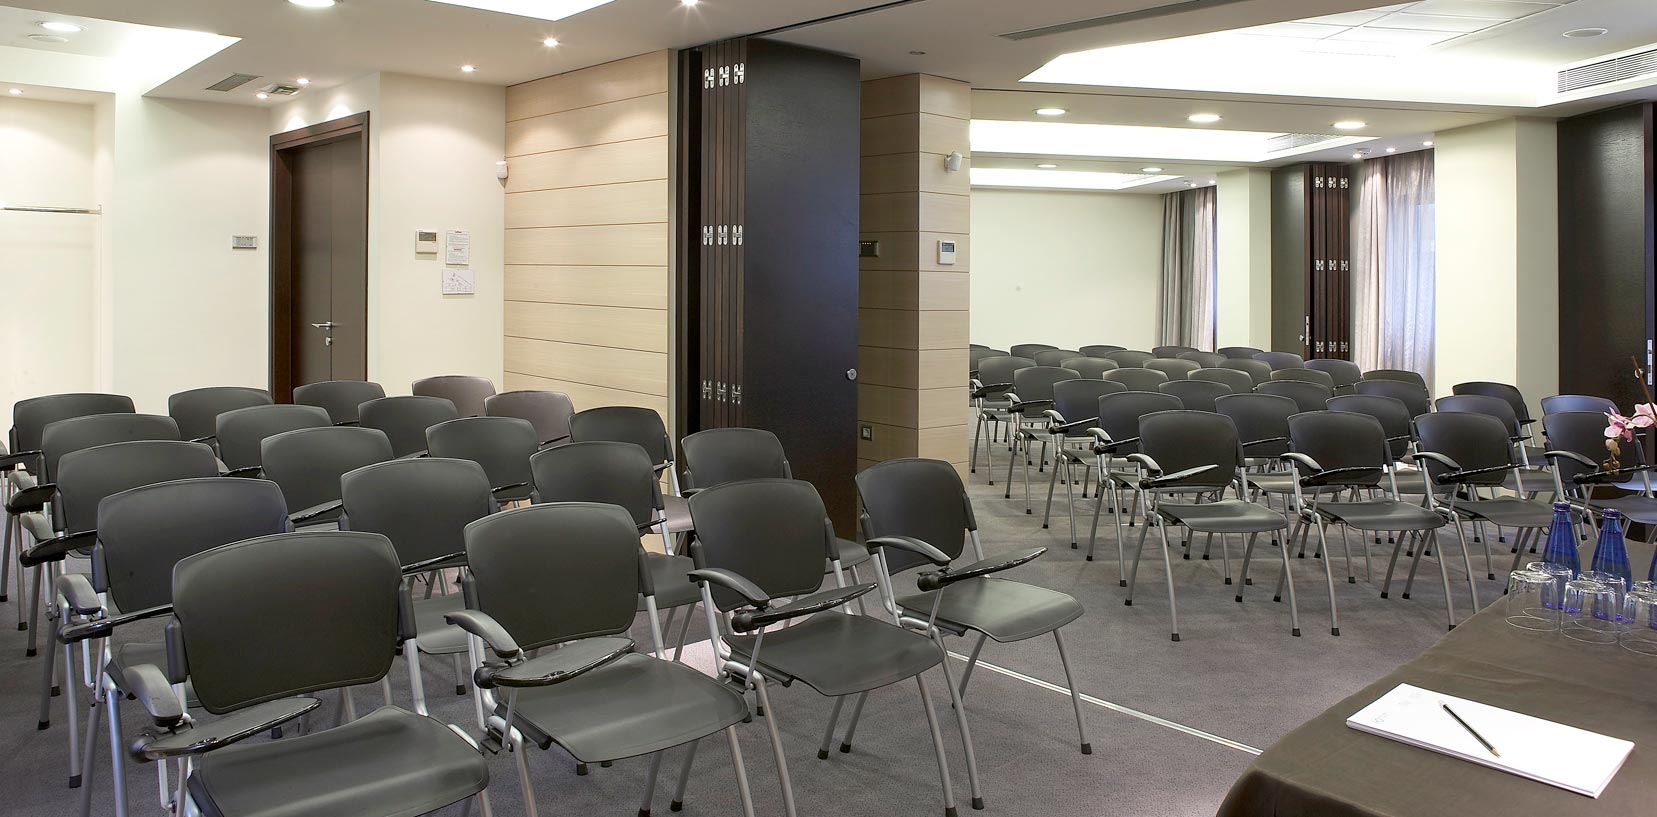 hotel_olympia_confererence_hall_seminars_expositions_social_events_J6J1441